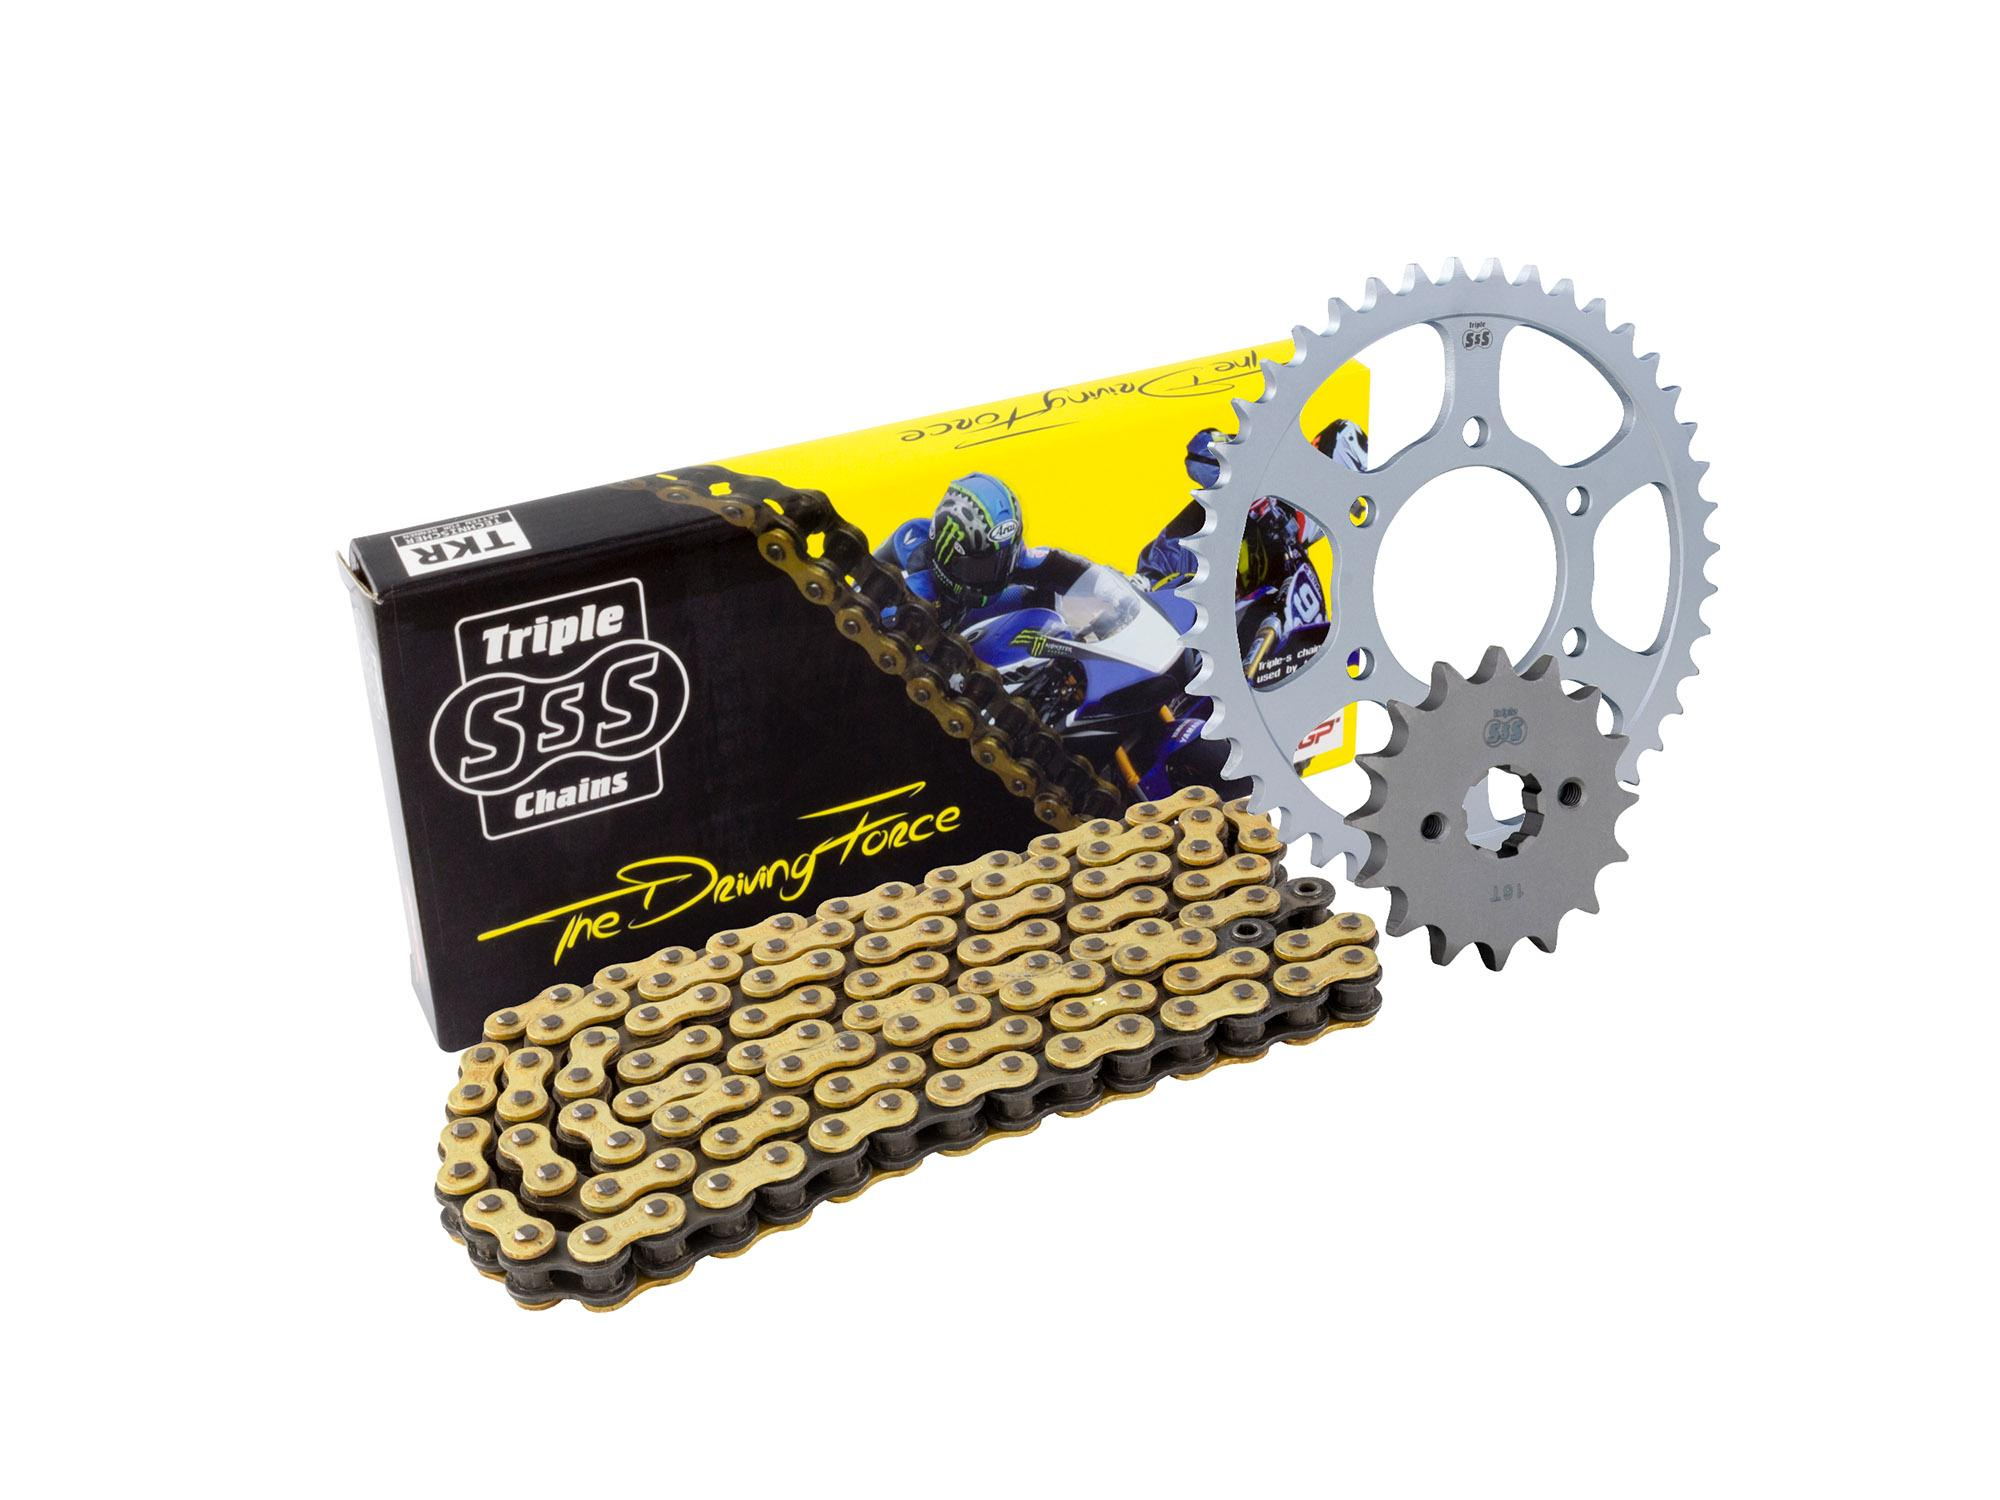 Kawasaki ZRX1100 C1-C4/D1 97-00 Chain & Sprocket Kit: 17T Front, 45T Rear, HD O-Ring Gold Chain 530H 110Link